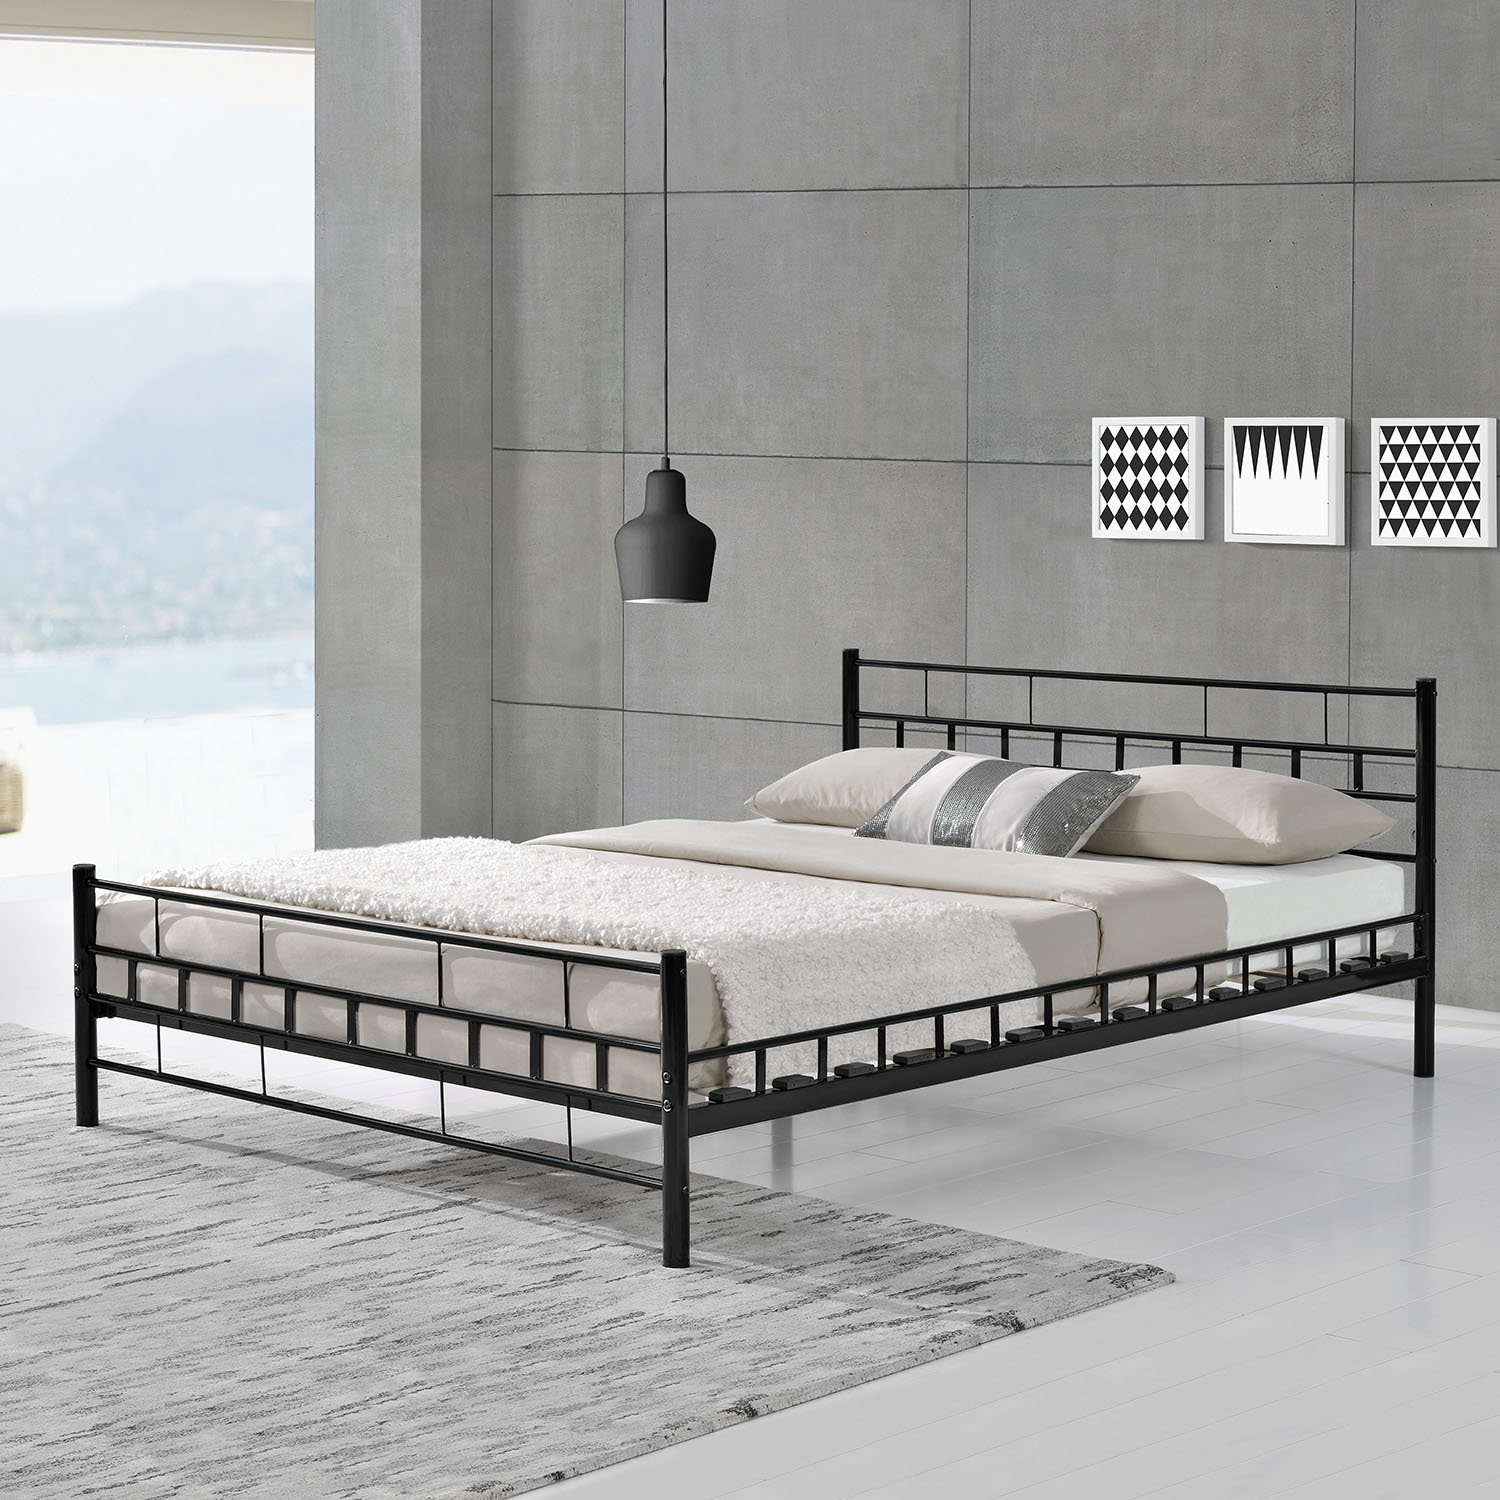 metallbett malta lattenrost bettgestell doppelbett bettrahmen metall bett ebay. Black Bedroom Furniture Sets. Home Design Ideas